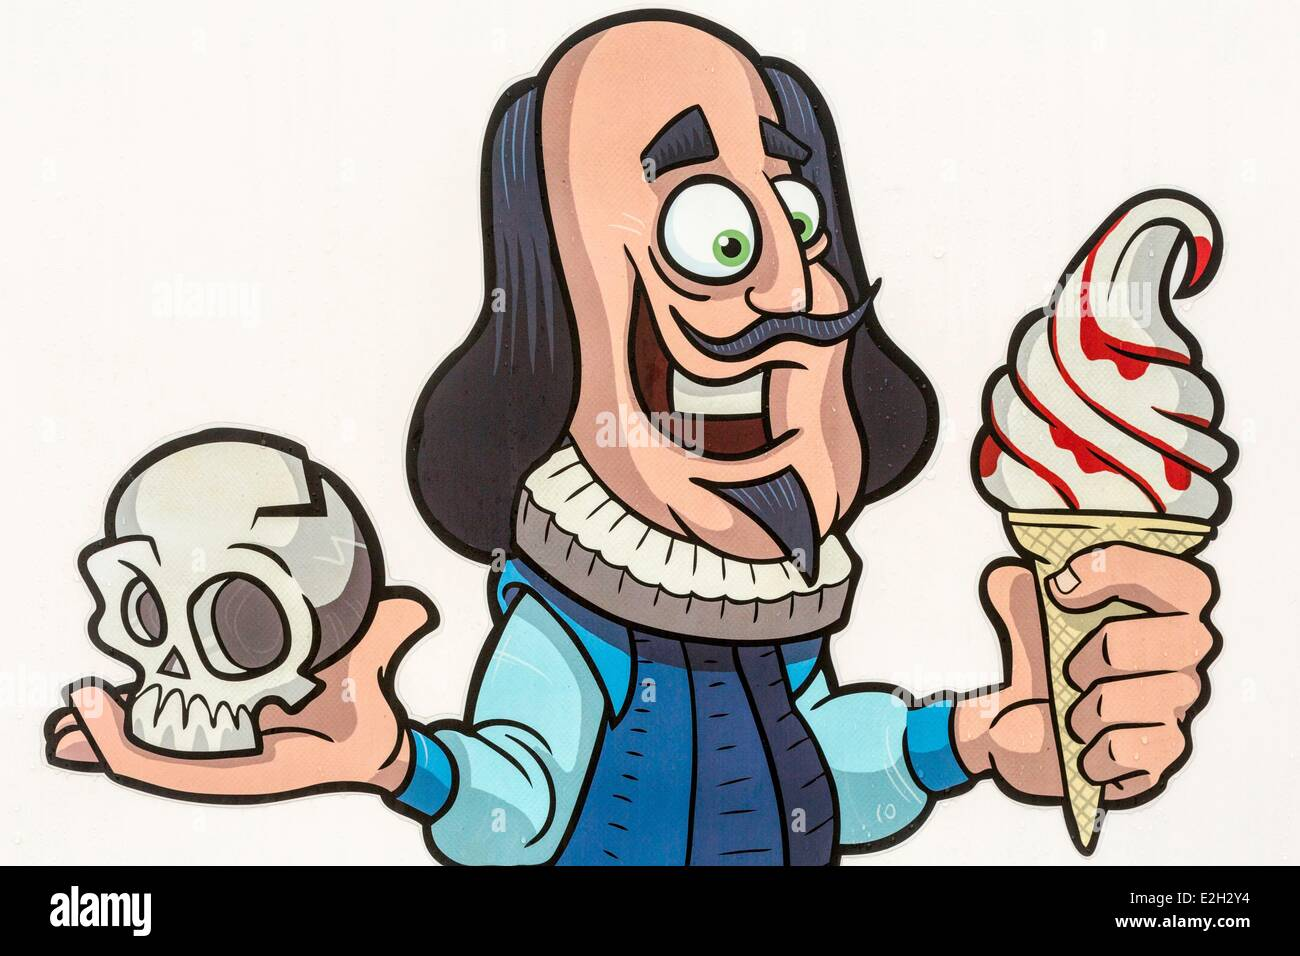 United Kingdom Warwickshire Stratford-upon-Avon drawing playwright William Shakespeare about a storefront glacier - Stock Image